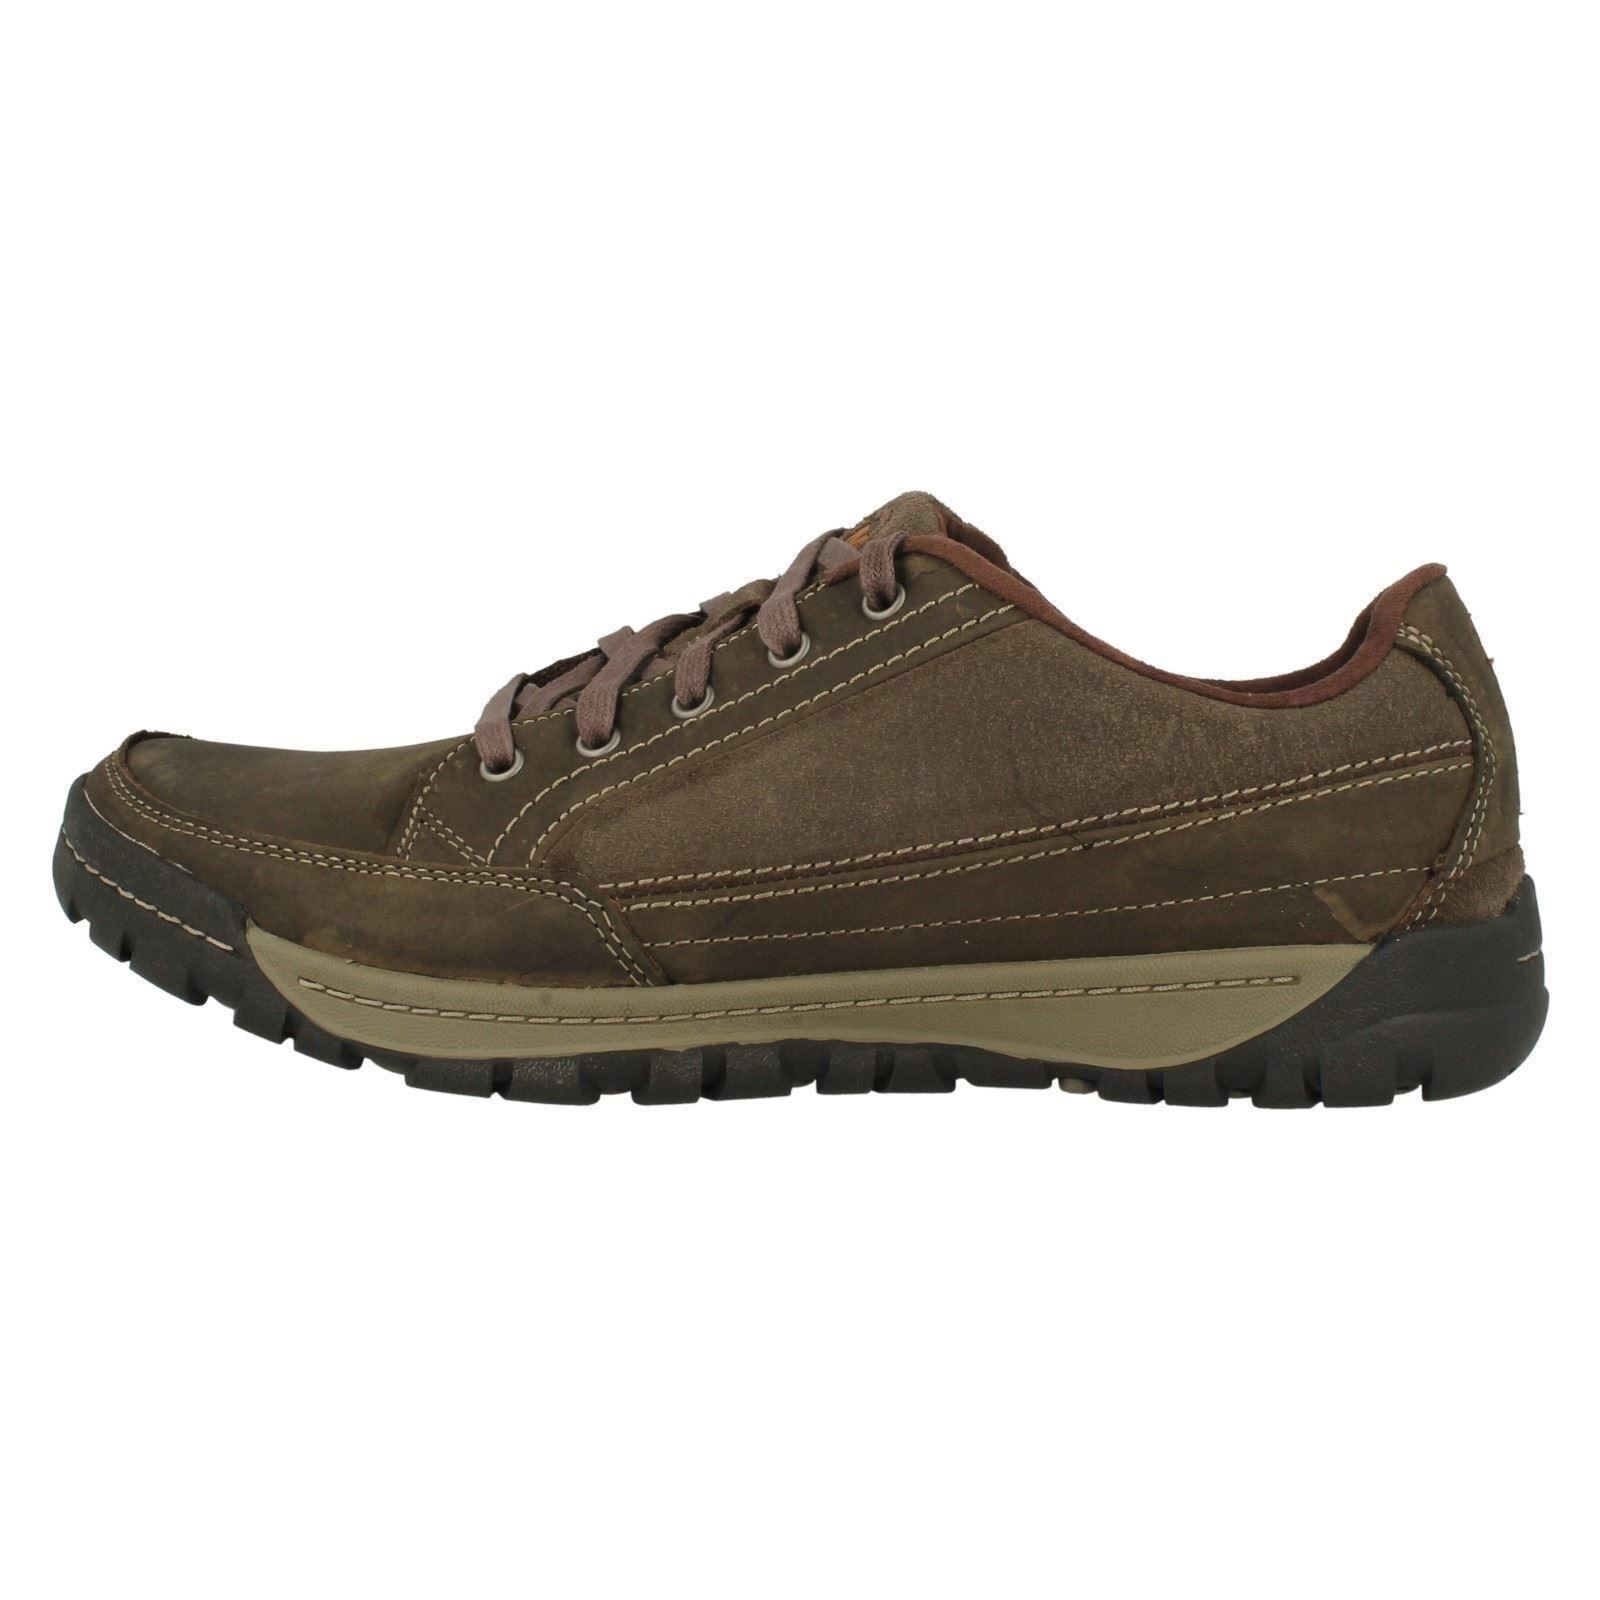 Mens Merrell Or Traveler Sphere Falcon, Espresso Or Merrell Black Leather Lace Up Trainers 8ebe62